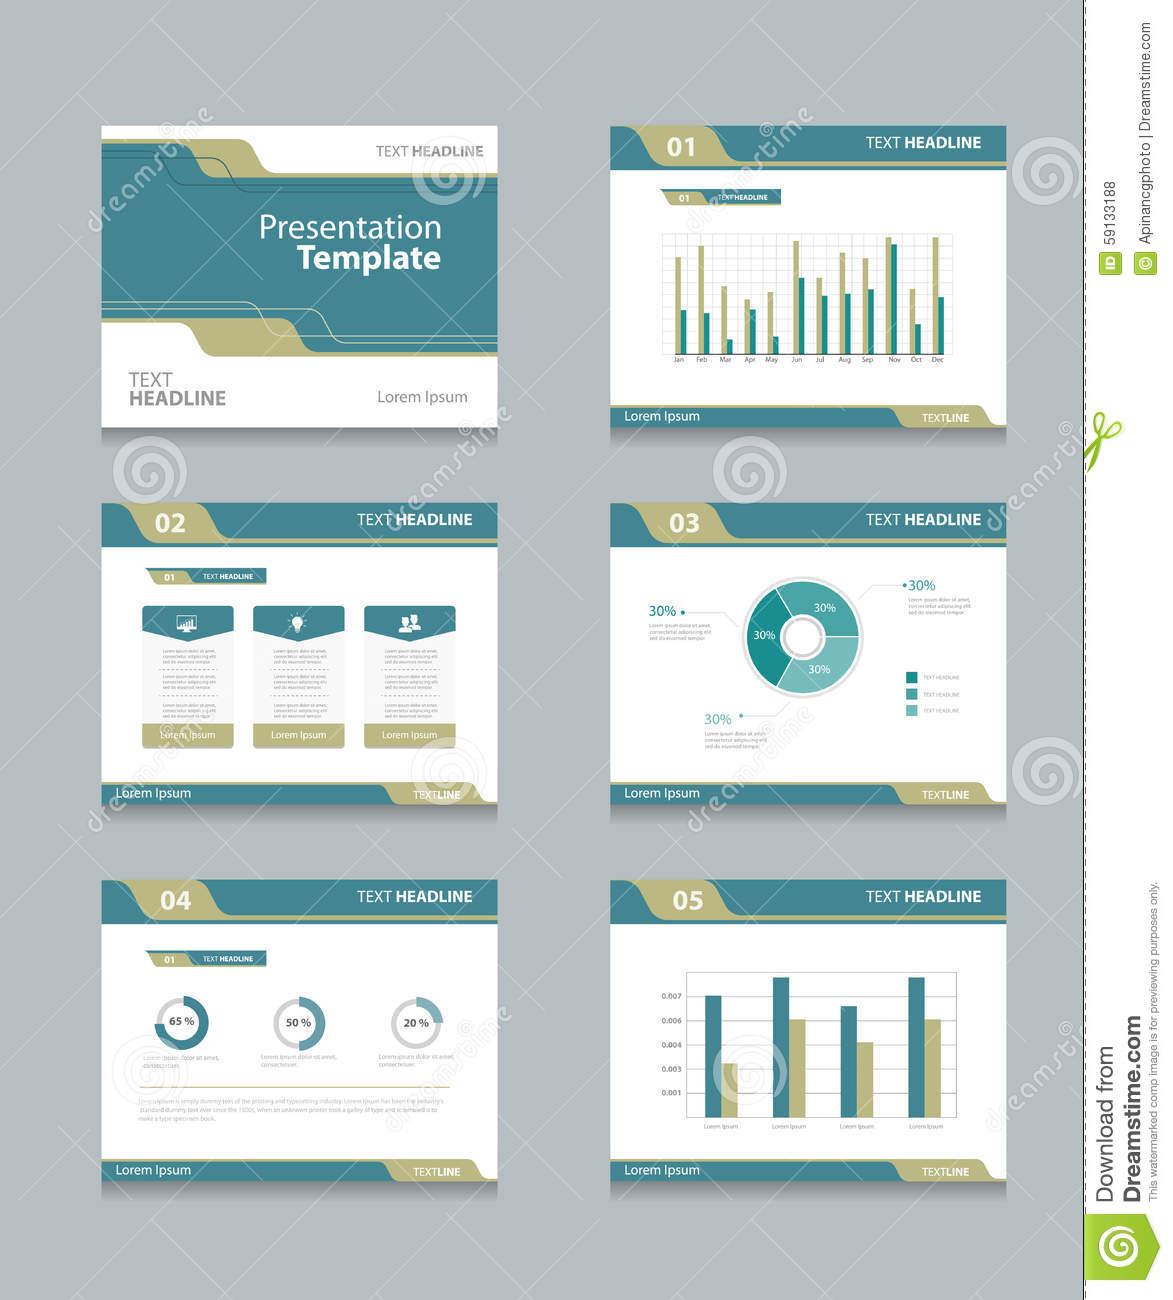 Sample Chart Templates design template power point : http://www.freewebtemplate.net/wp-content/uploads/2017/08/f479f37a4db32970ca4bf0f11d86693a.jpg